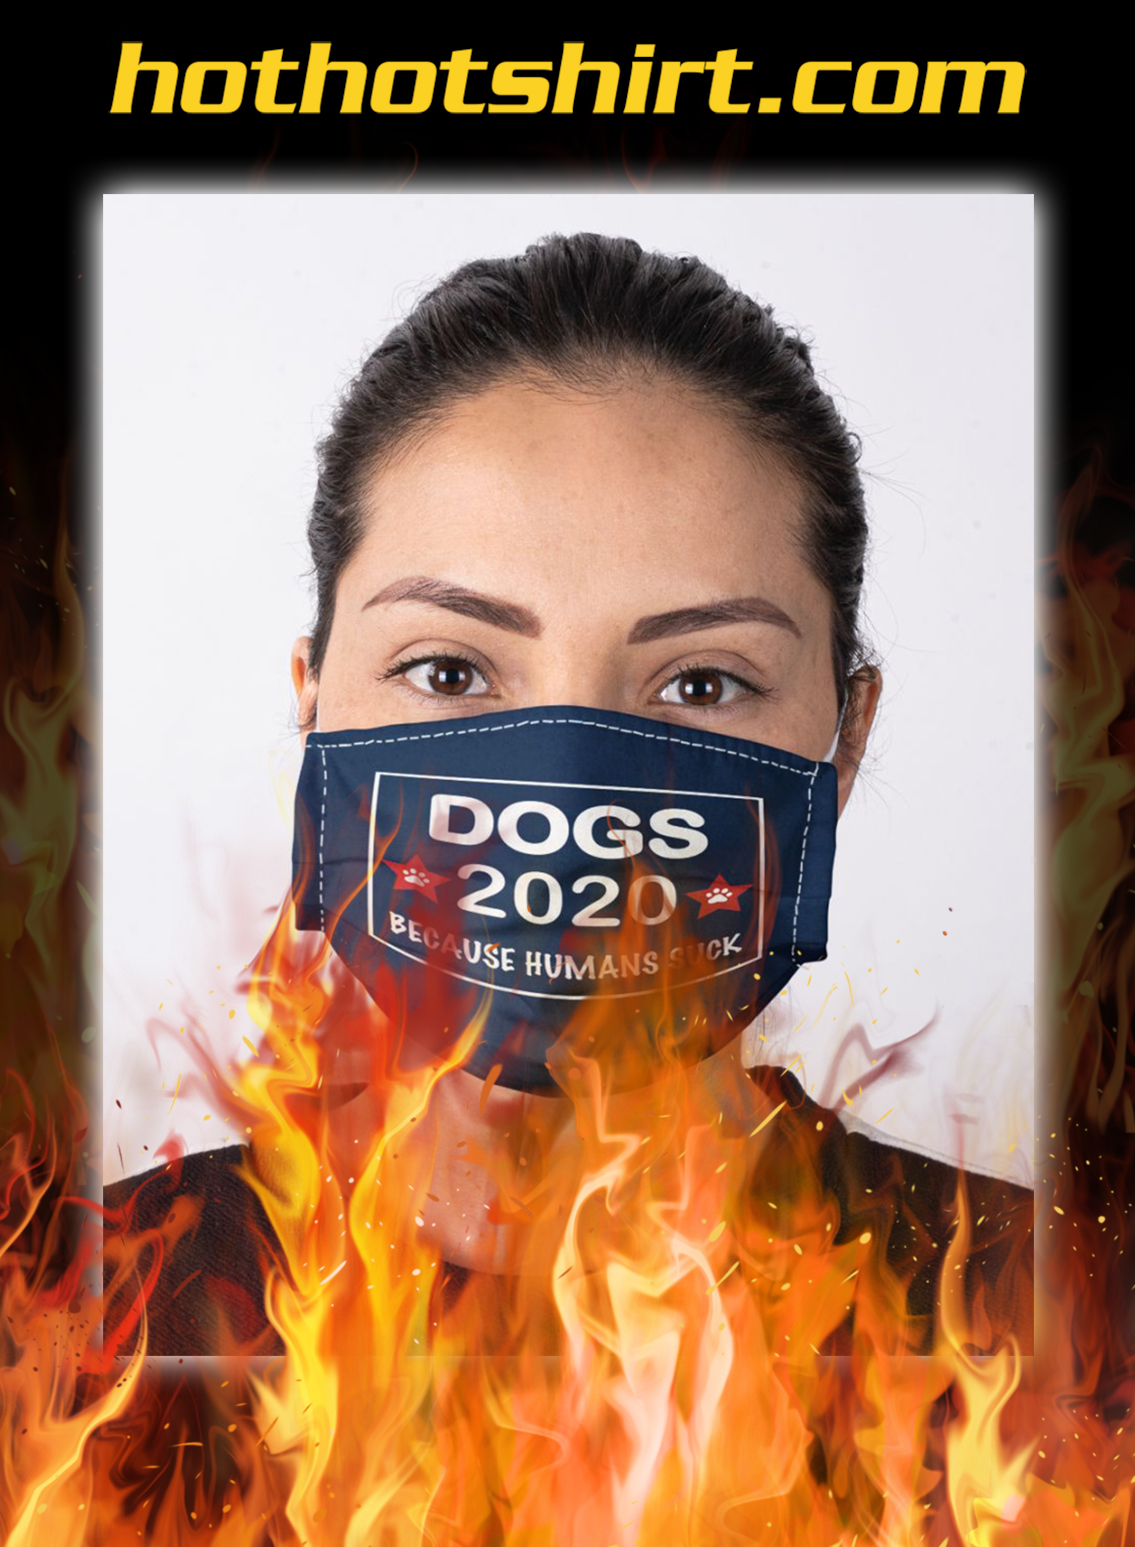 Dogs 2020 because humans suck face mask- pic 1